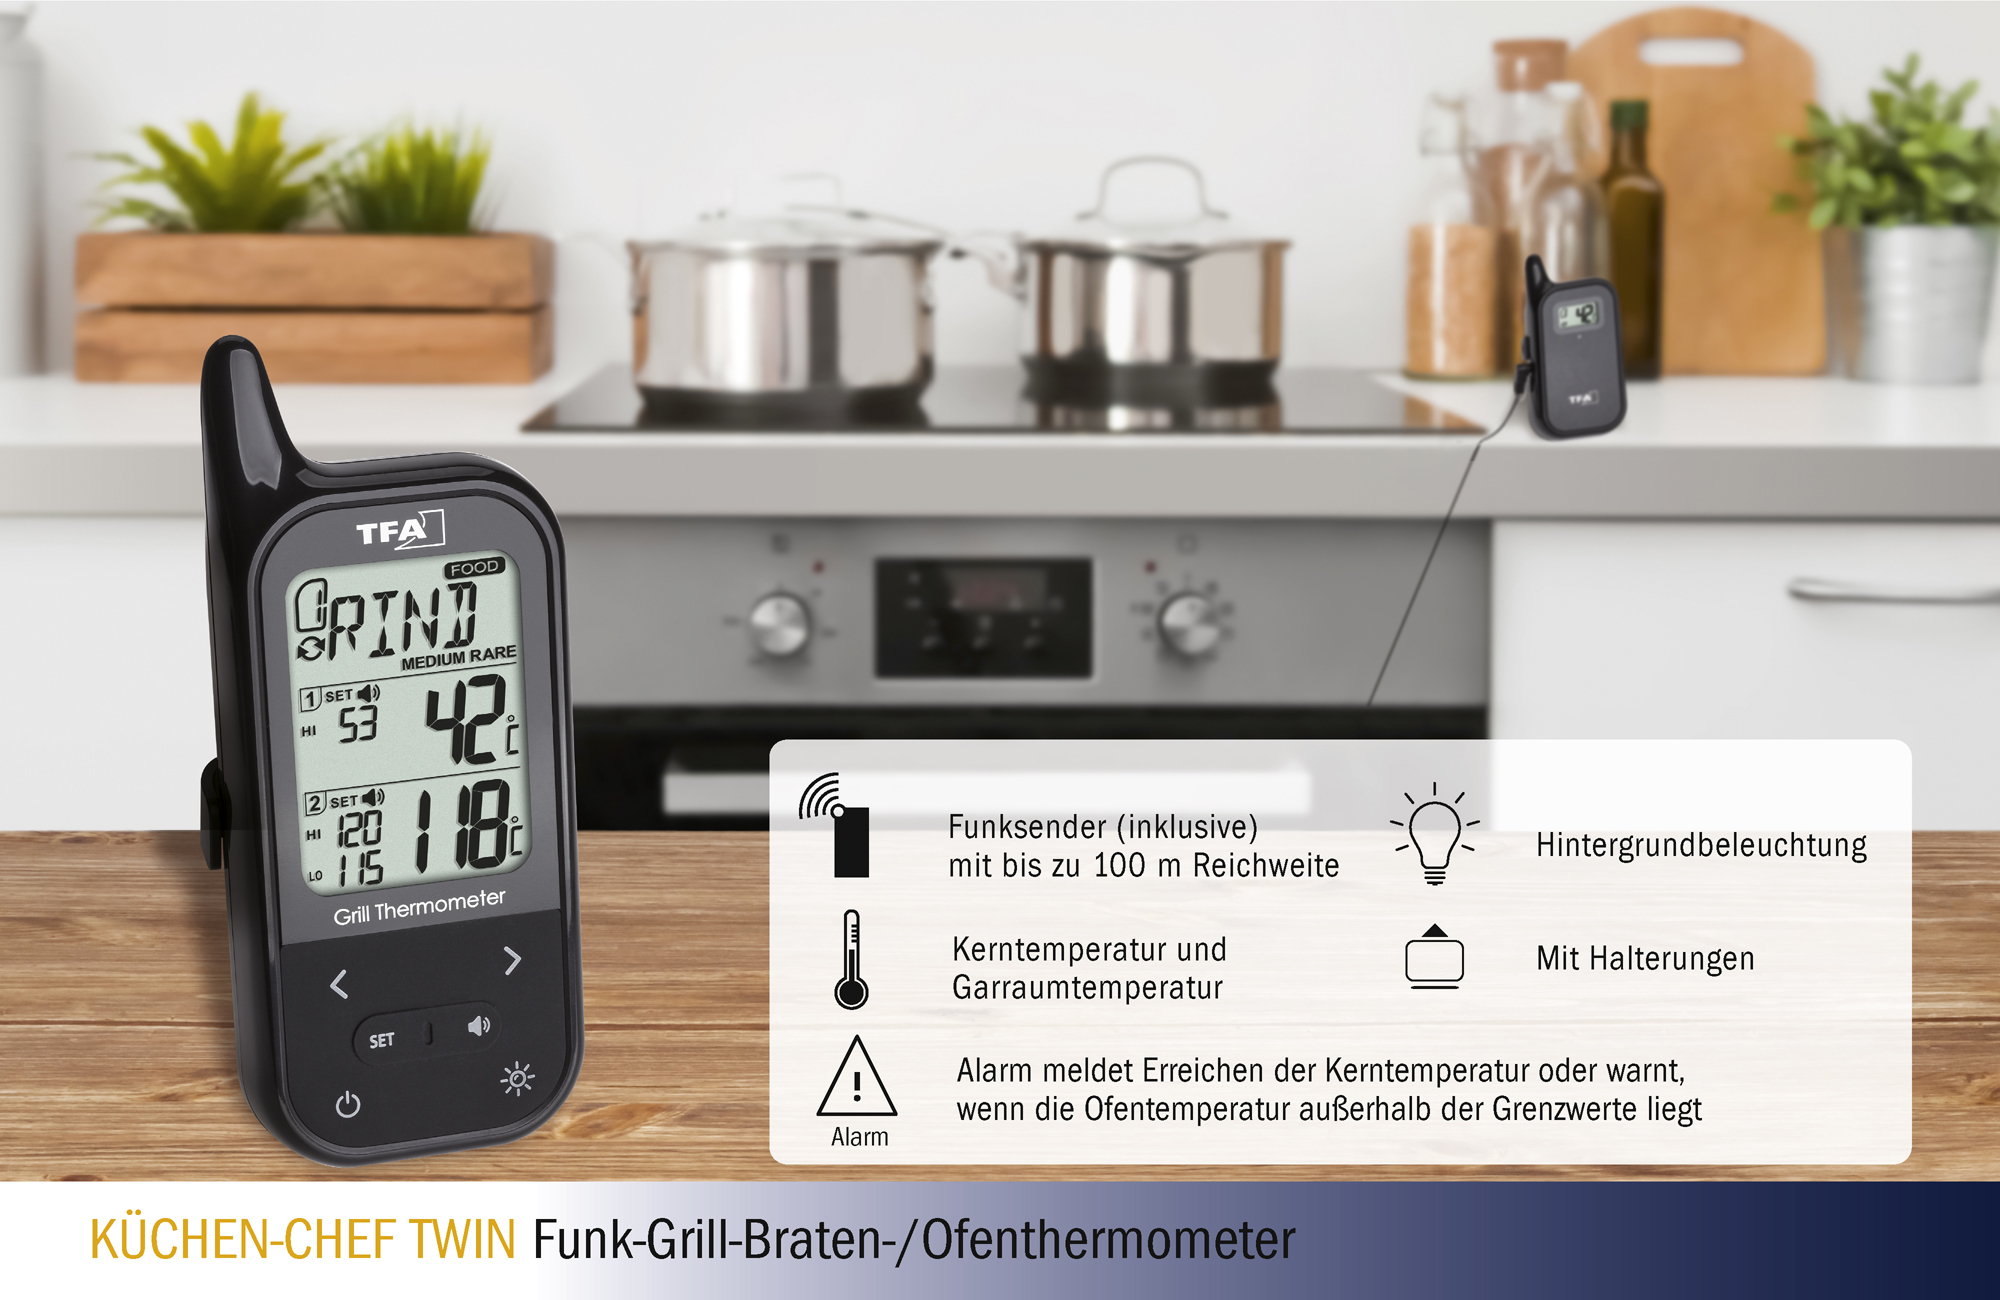 KuechenChef_Twin_Funk-Grillthermometer_141511_Icons.jpg